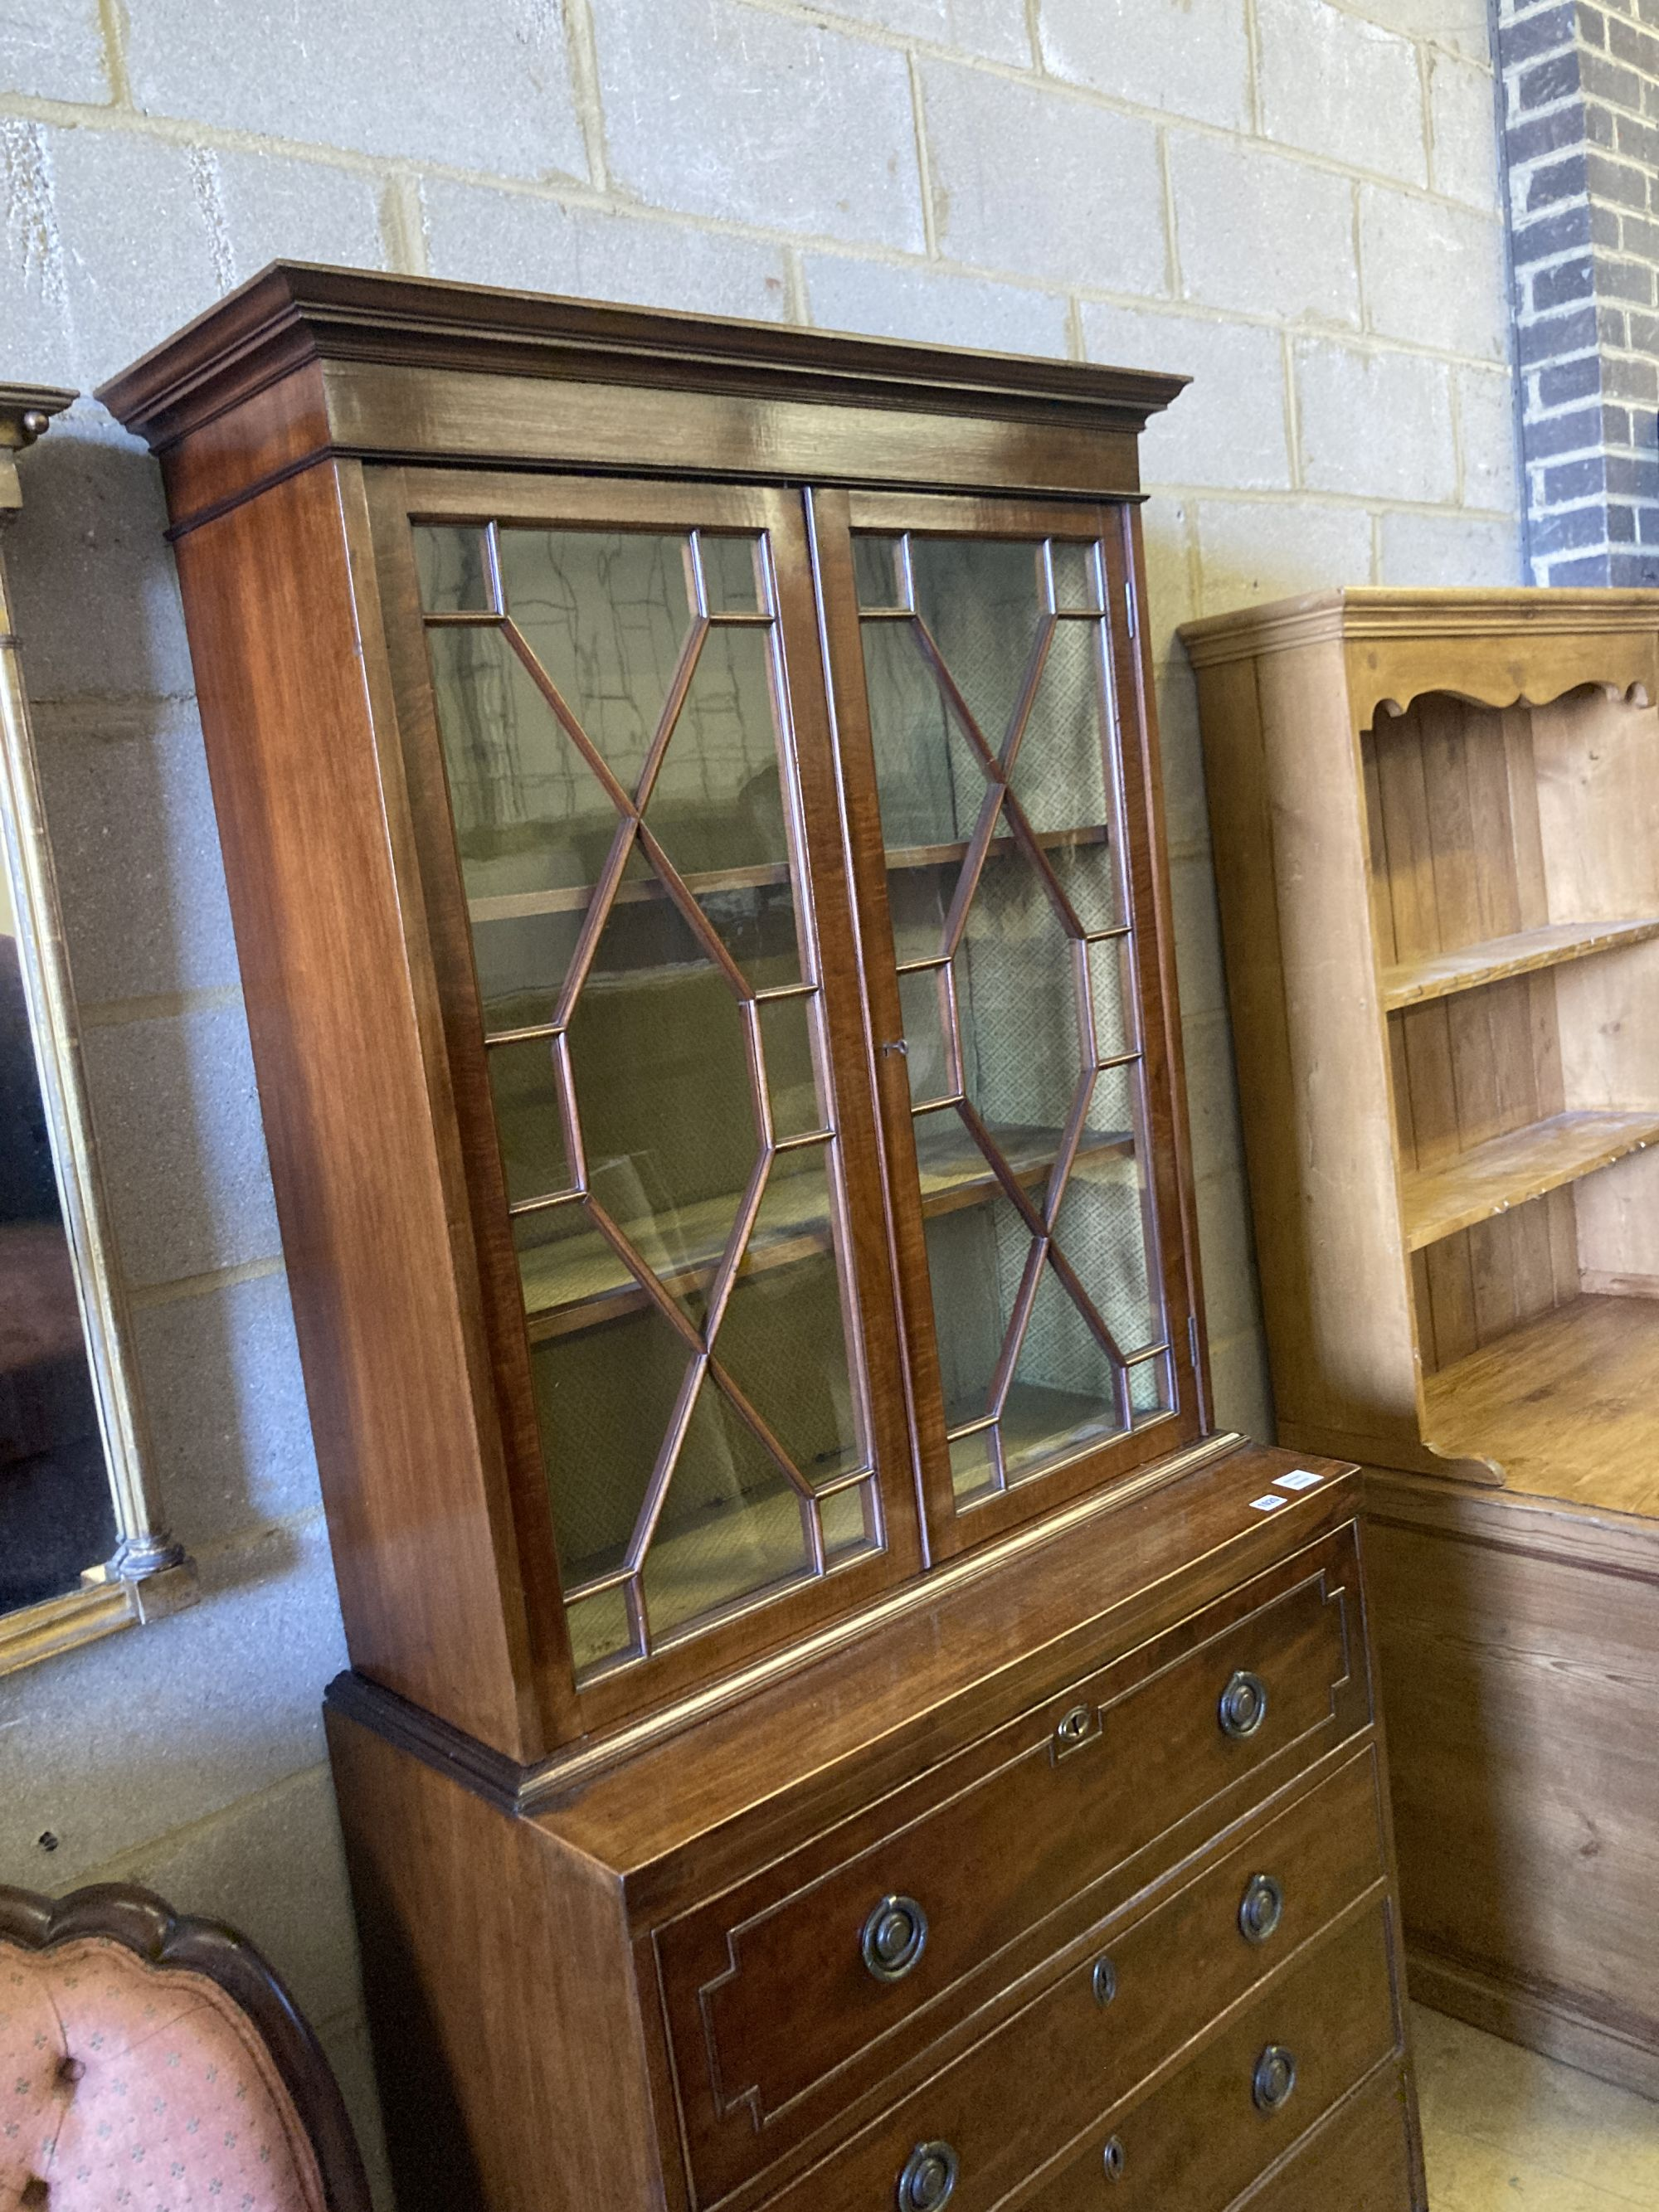 A George III Sheraton style mahogany secretaire bookcase, width 91cm, depth 46cm, height - Image 2 of 3